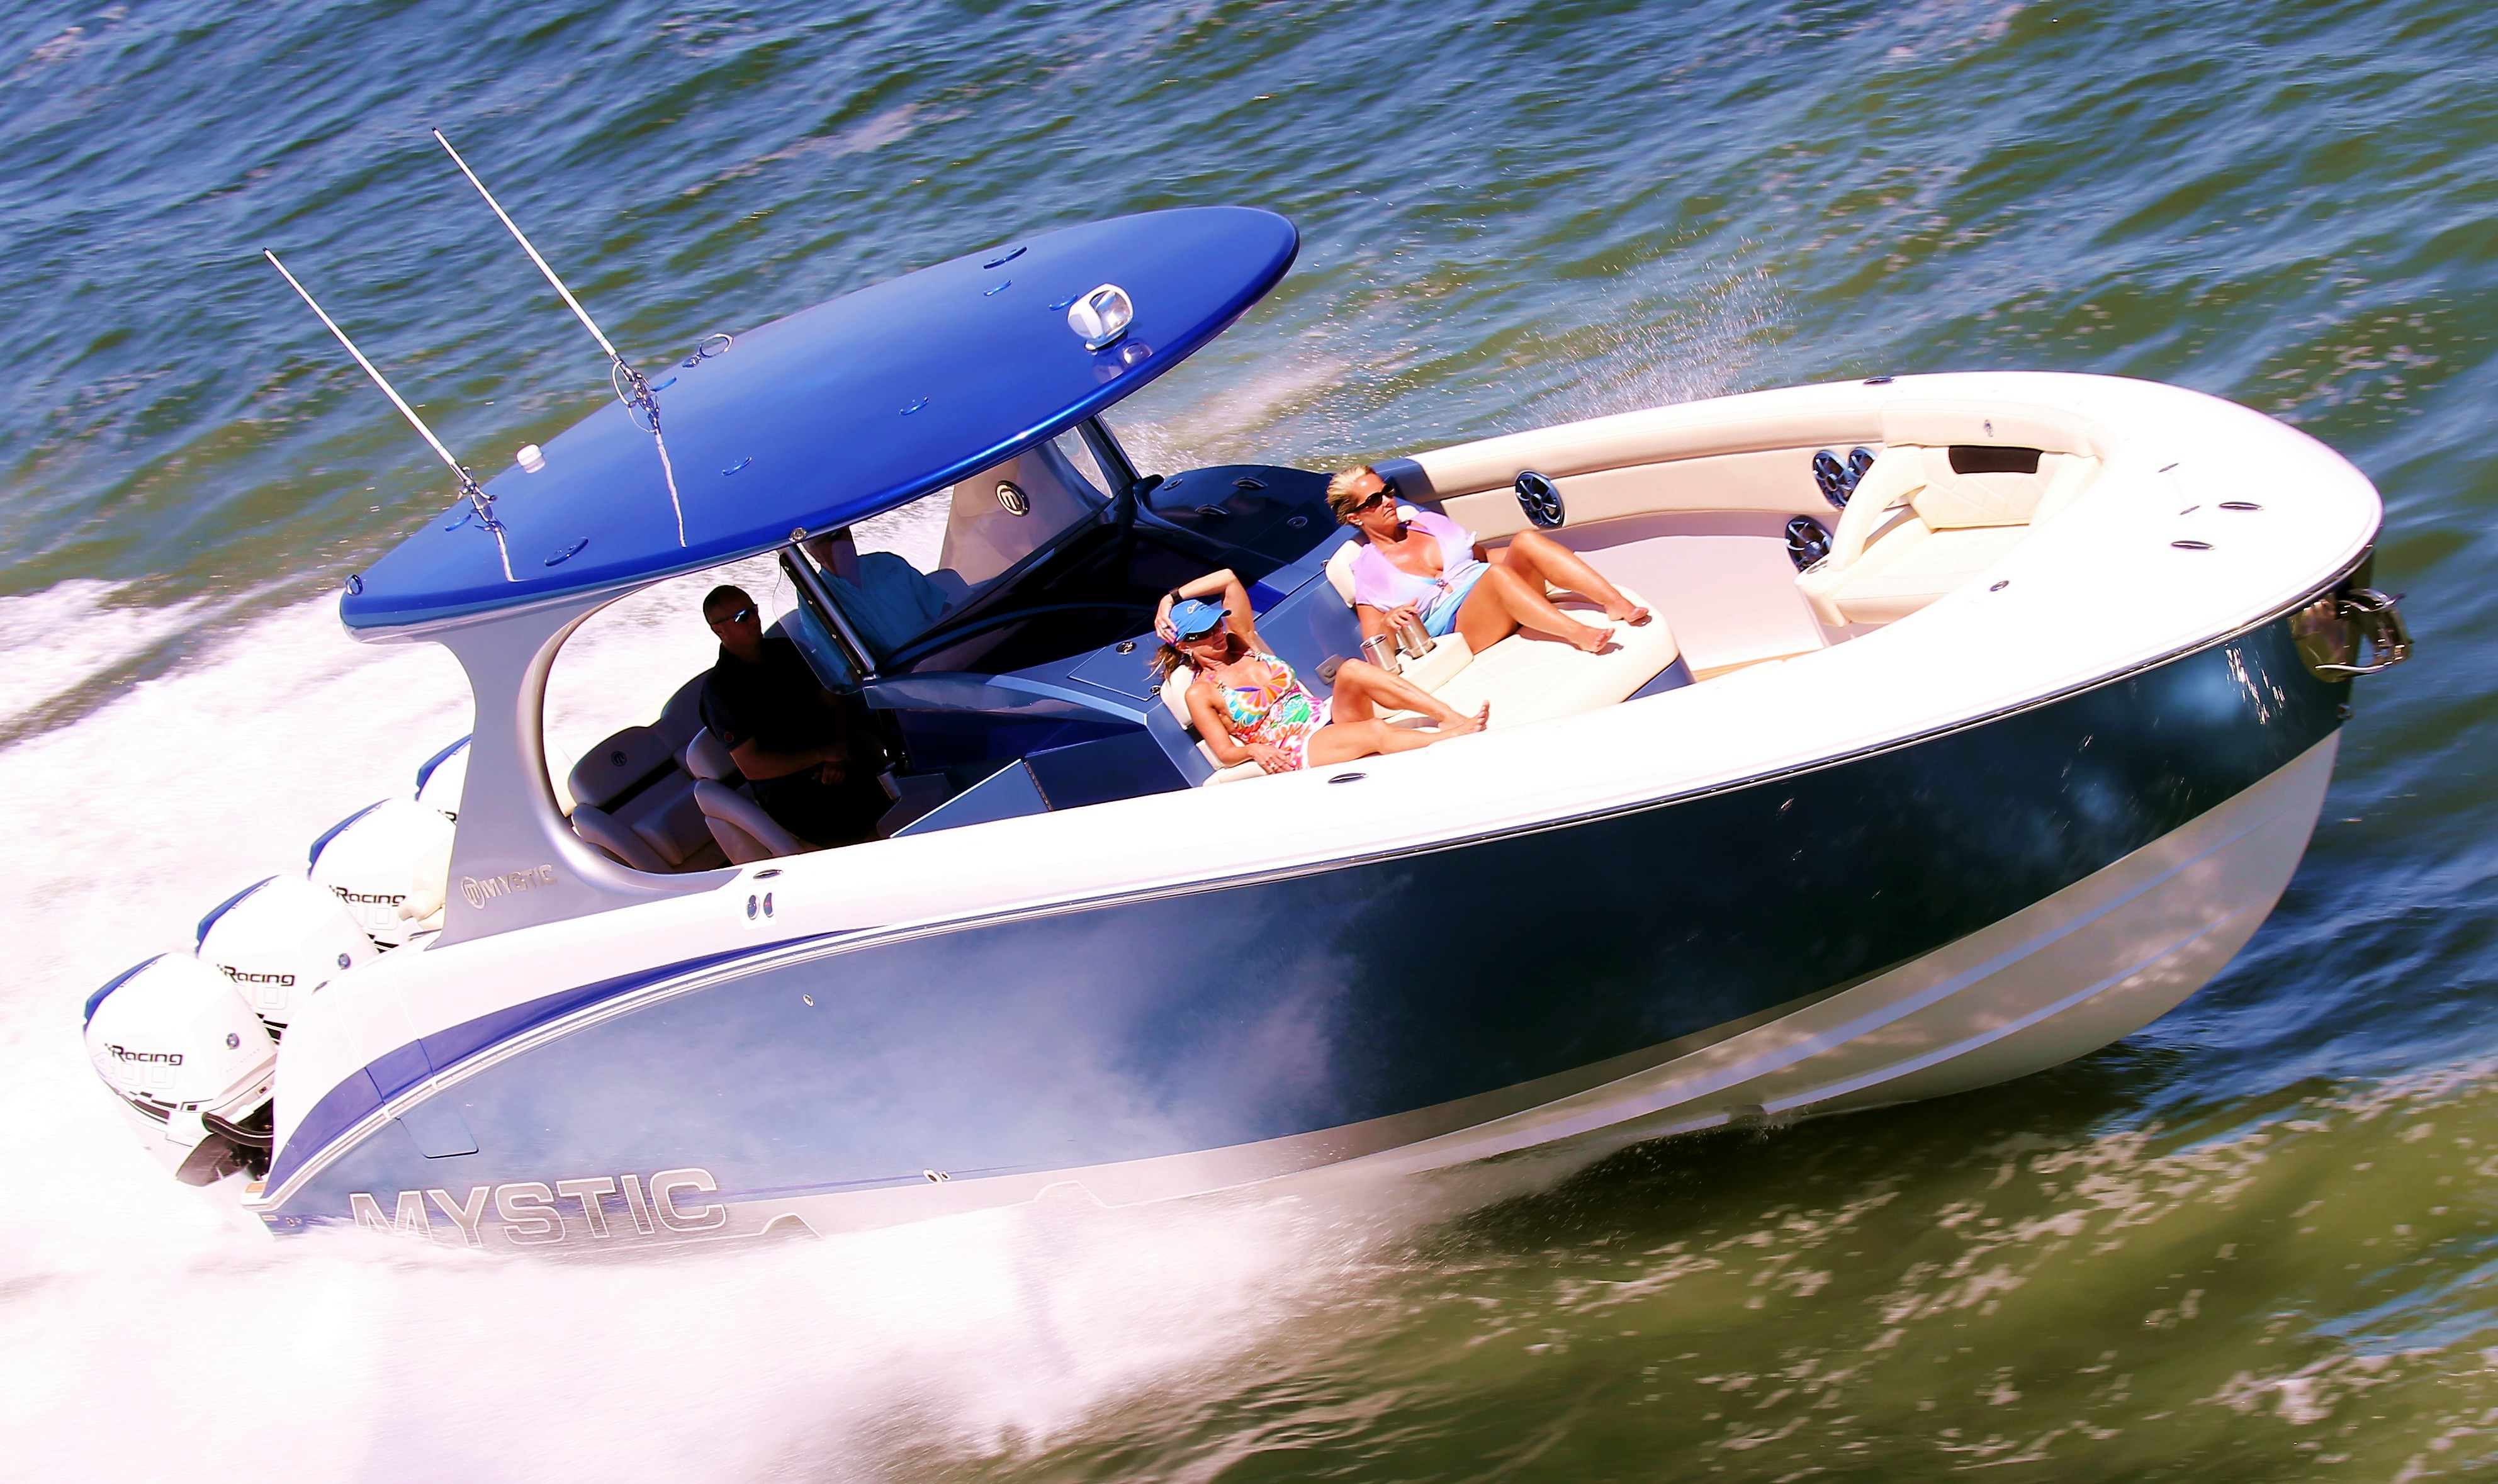 With the 2015-2016 season behind them, Fort Myers Offshore club members can now focus on their own boating seasons. Photo by Pete Boden/Shoot 2 Thrill Pix. (https://www.facebook.com/Shoot-2-Thrill-Pix-130528070292399/?fref=ts)